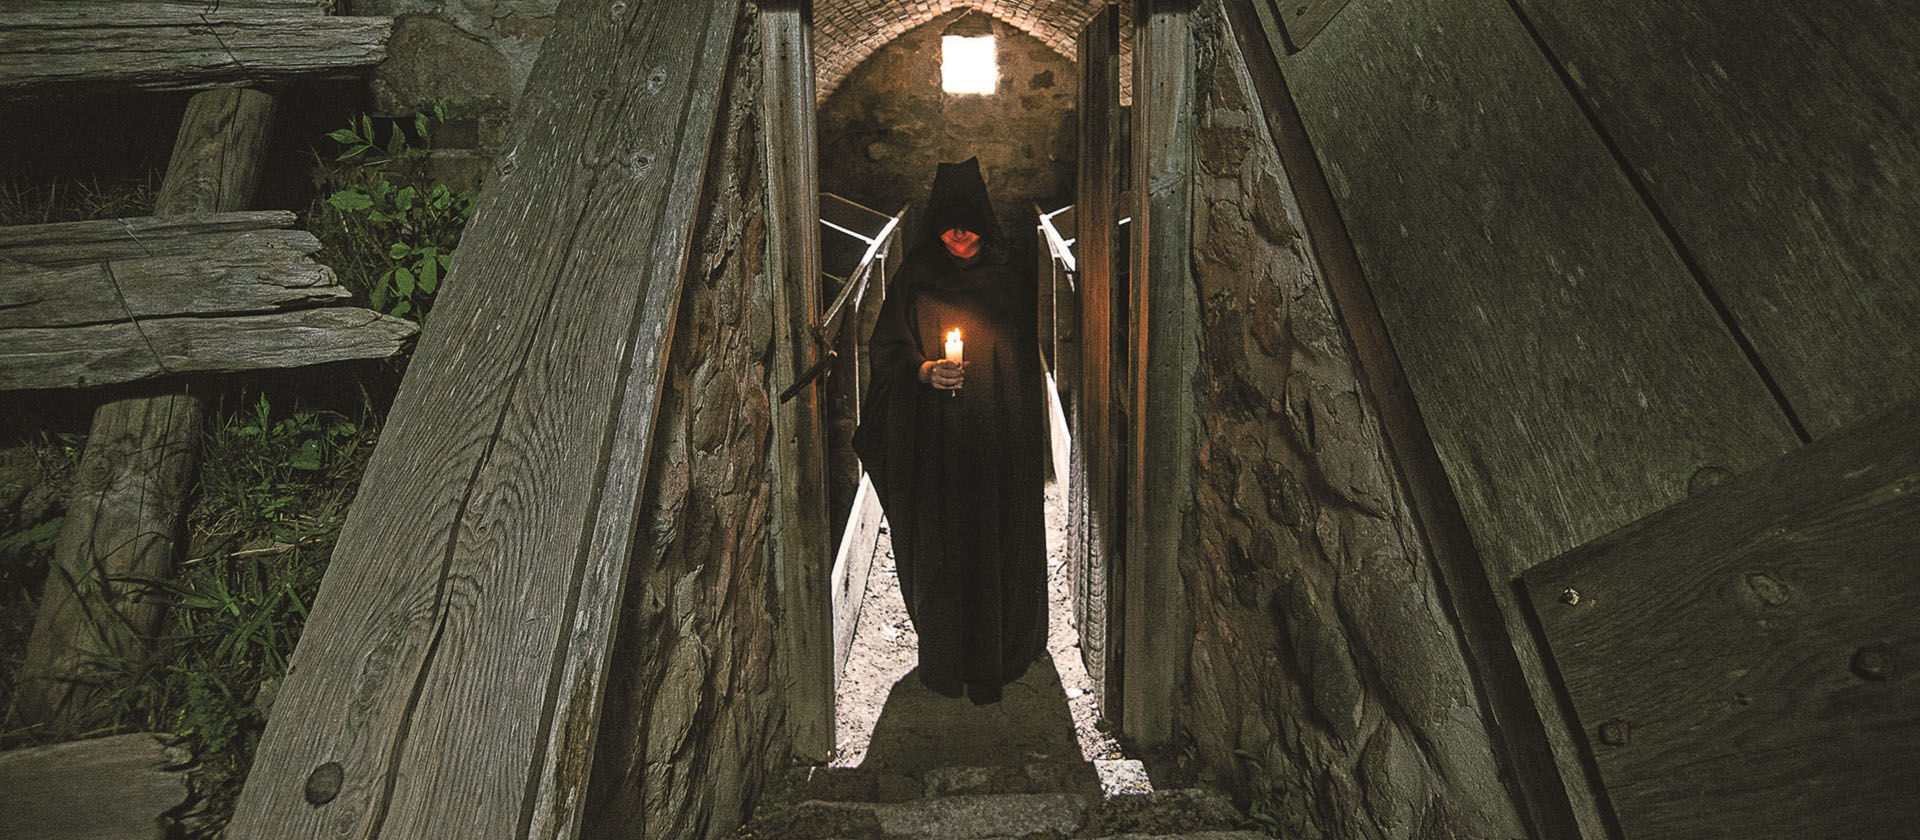 hooded figure with a candle stands at the entrance to the Black Creek apple cellar